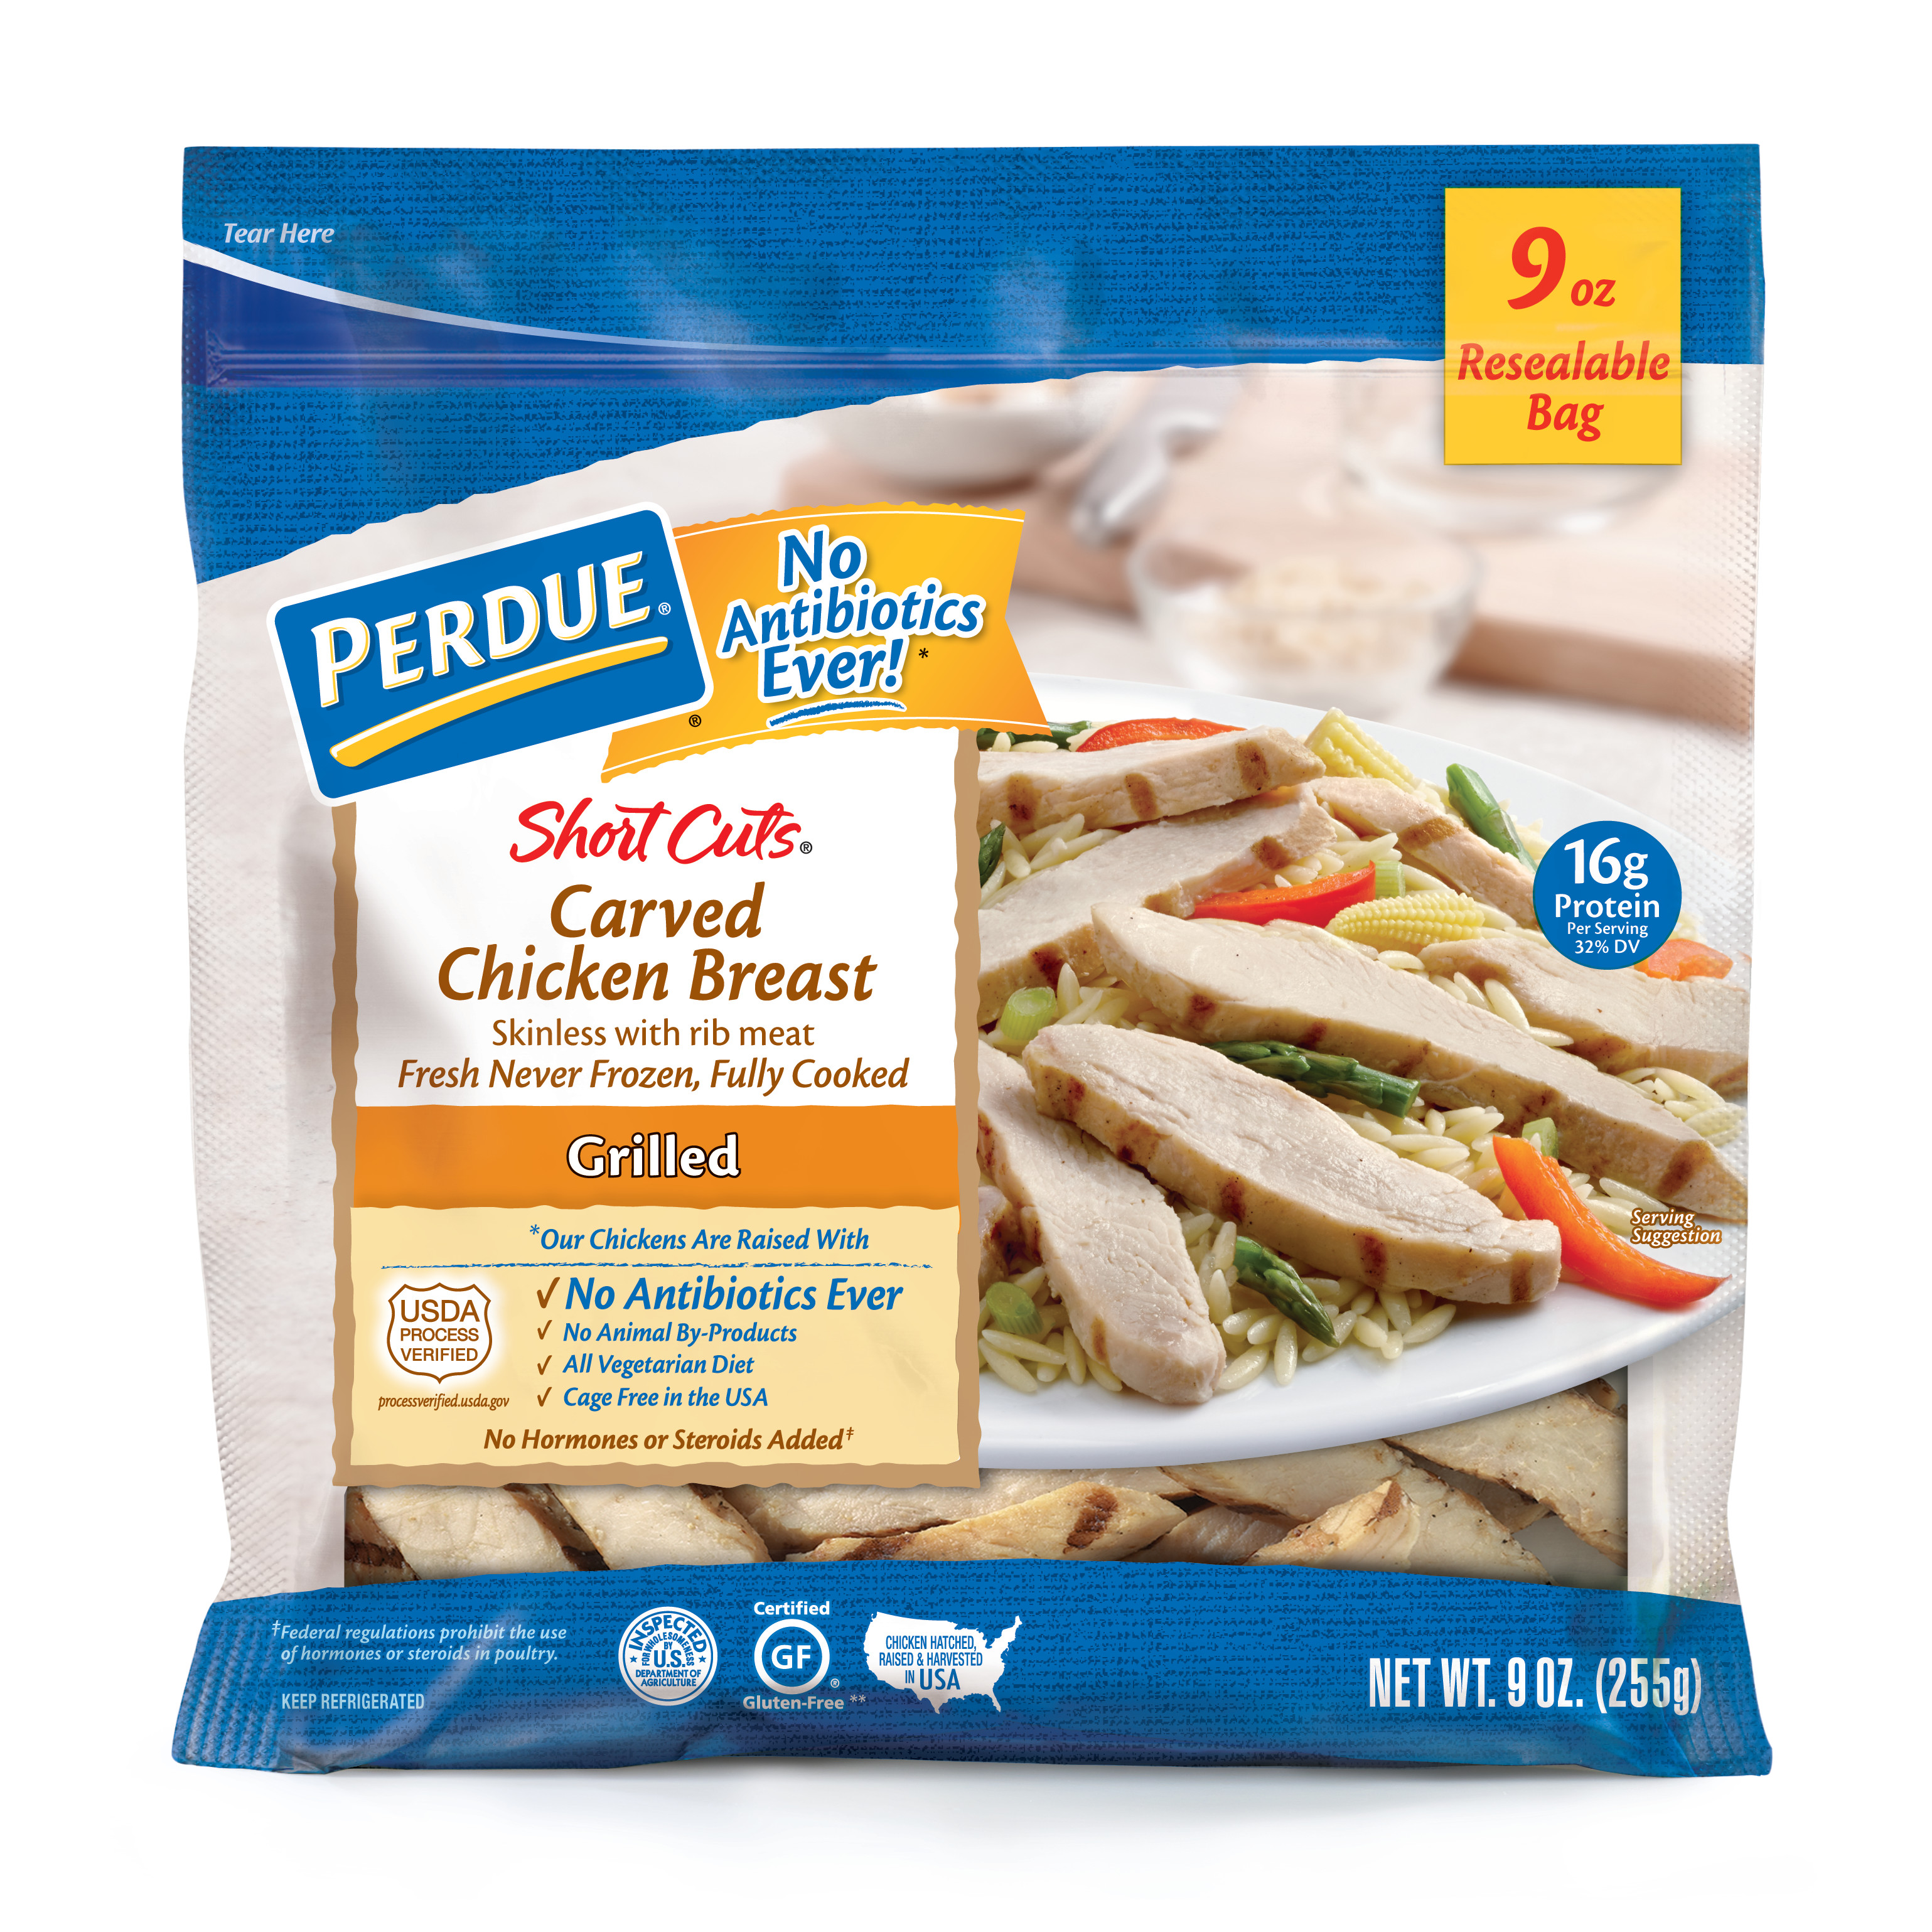 PERDUE SHORT CUTS Carved Chicken Breast Grilled (9 oz.)